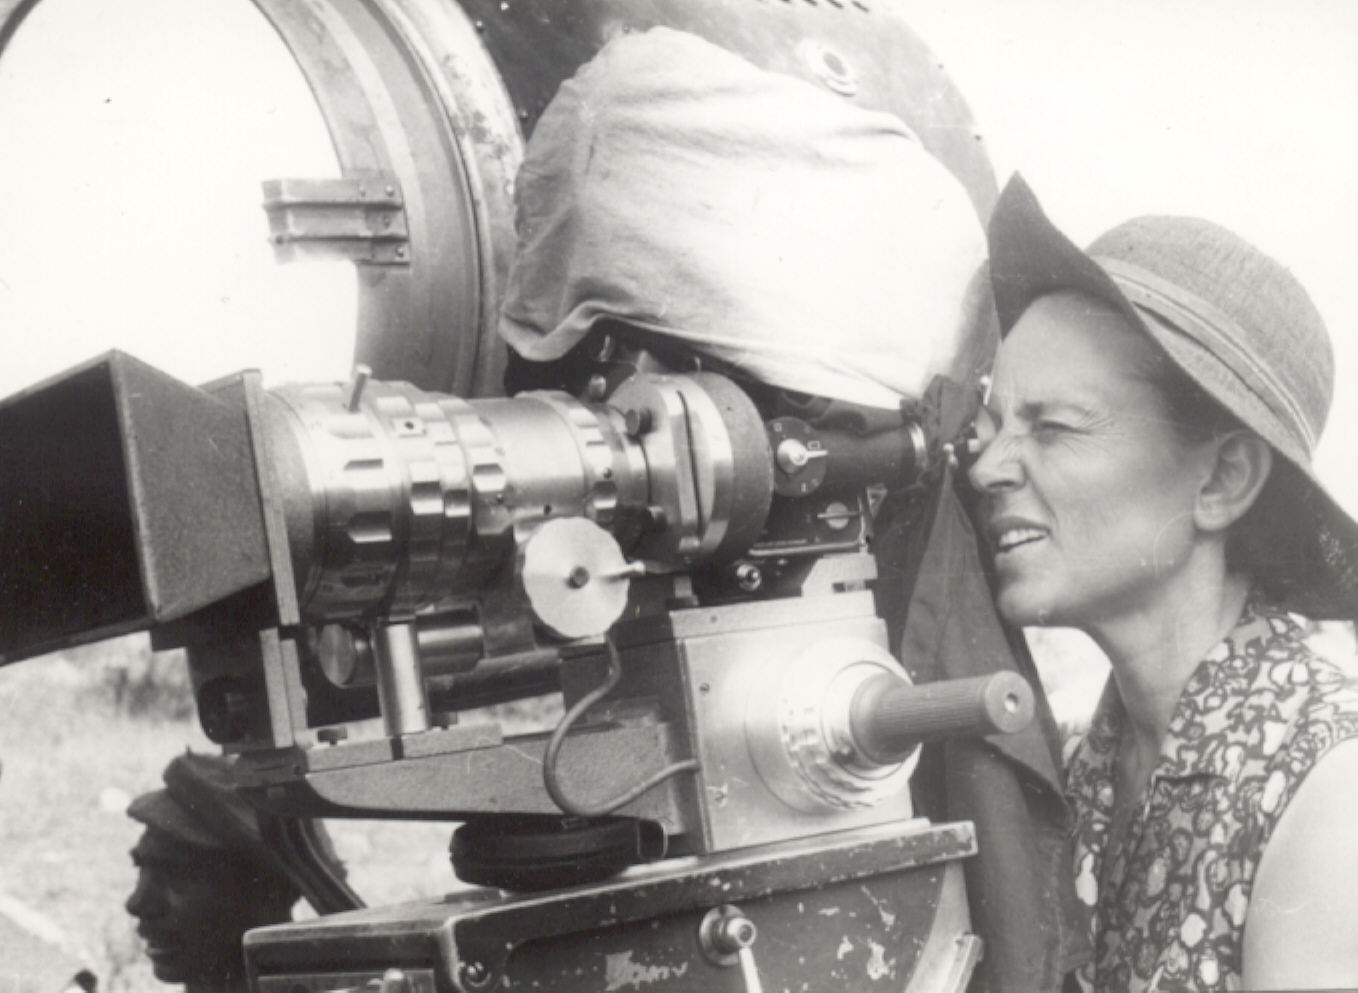 Film director Binka Zhelyazkova at work, 1967